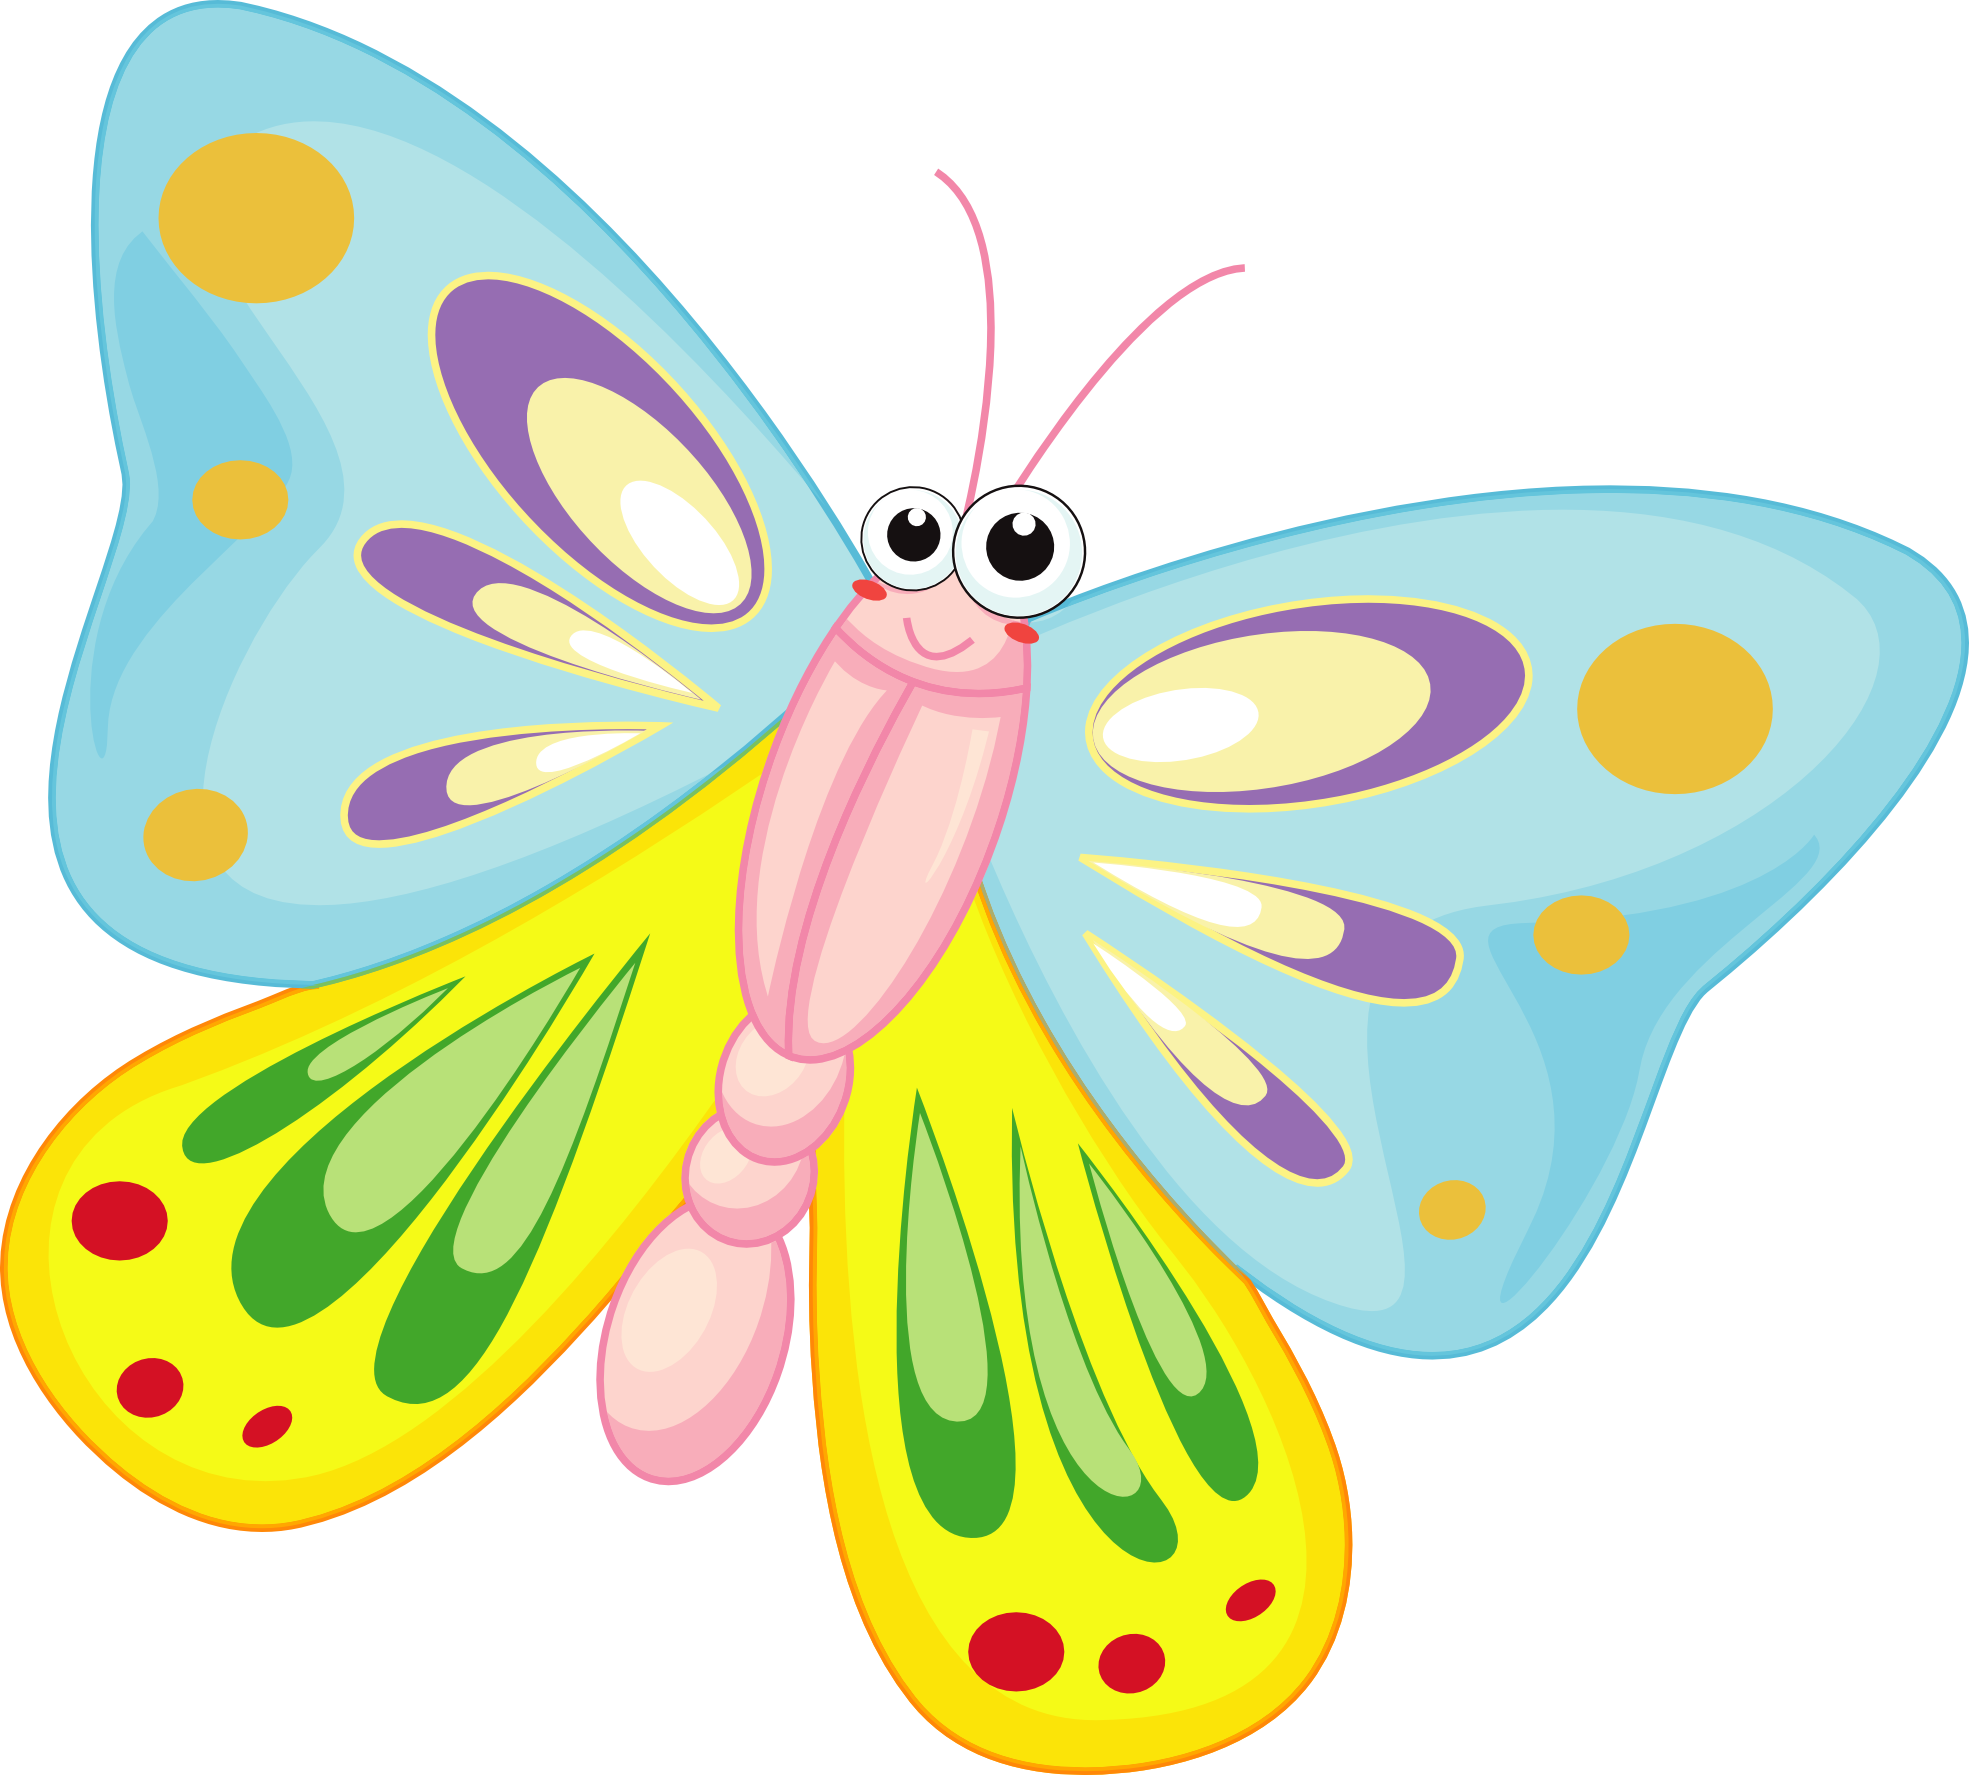 Smiley clipart butterfly. Free cartoon download clip